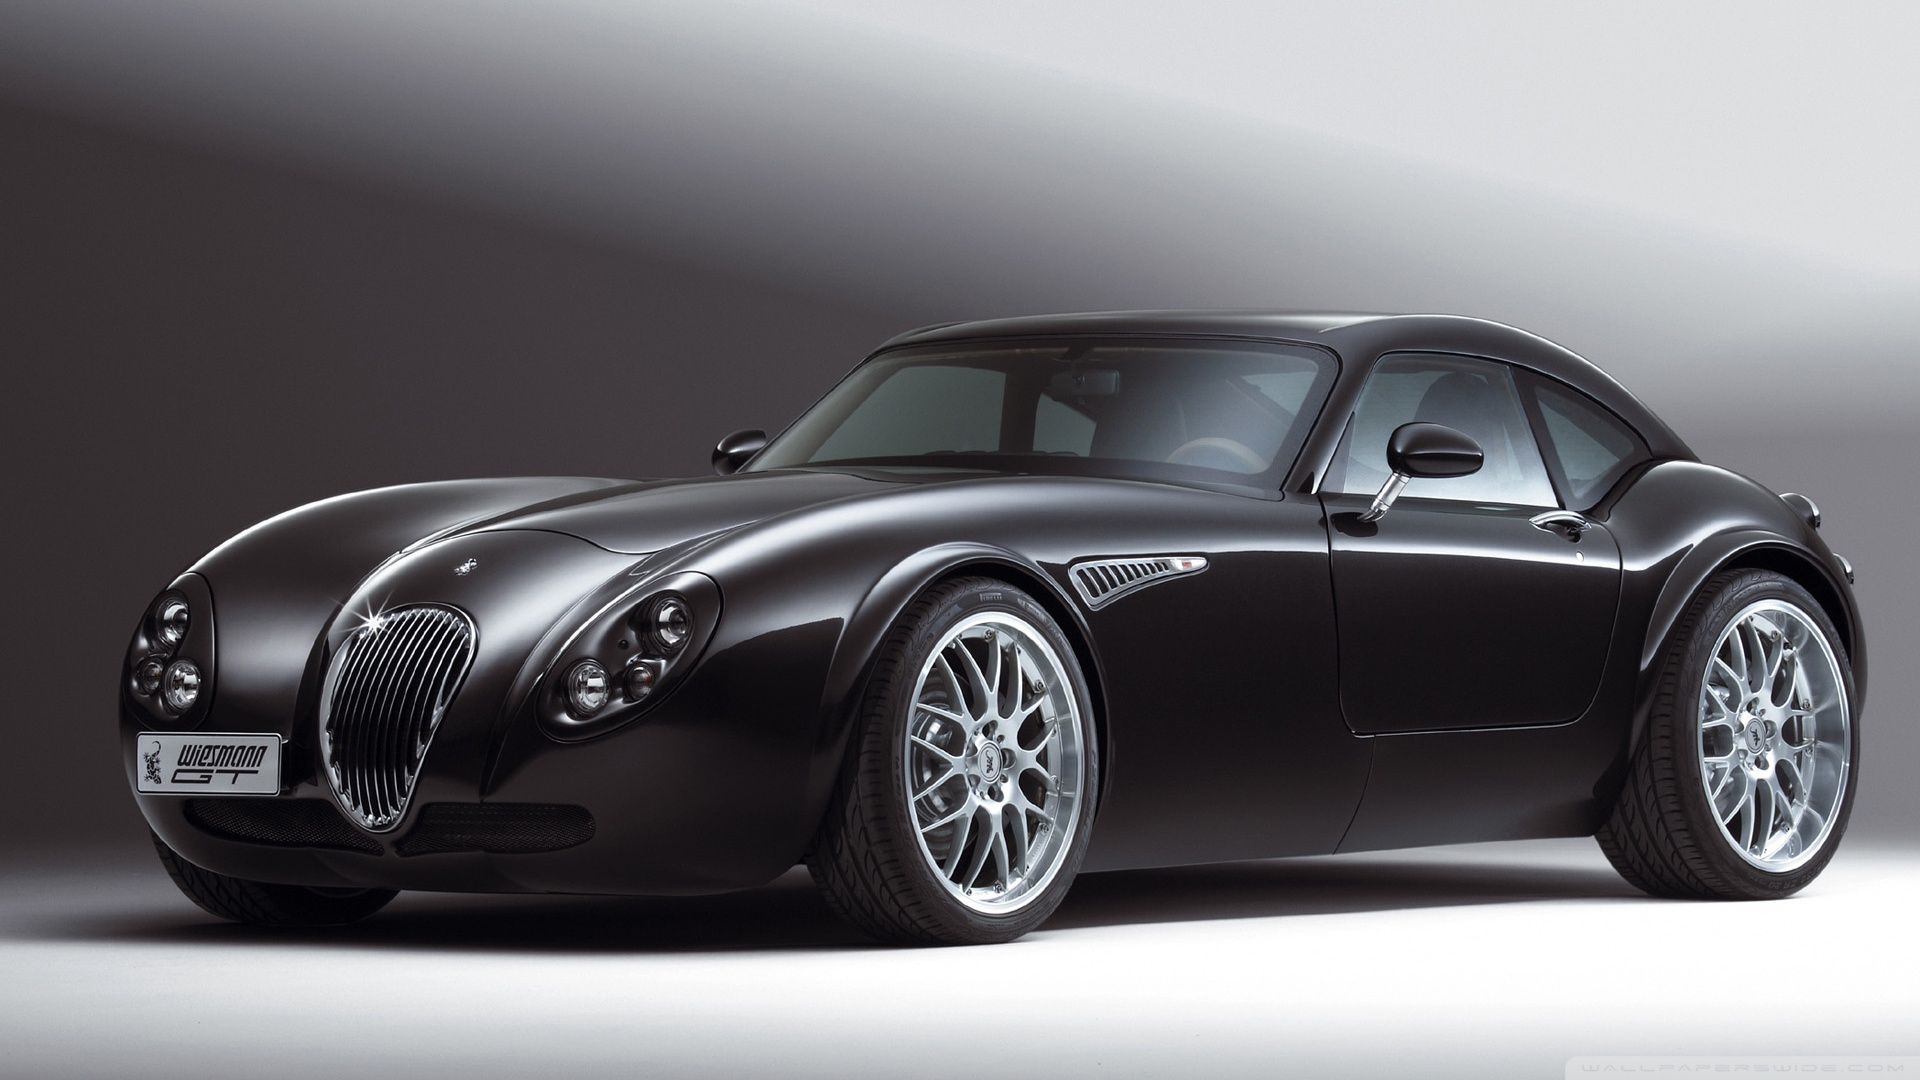 1920x1080 - Wiesmann GT MF4 Wallpapers 6